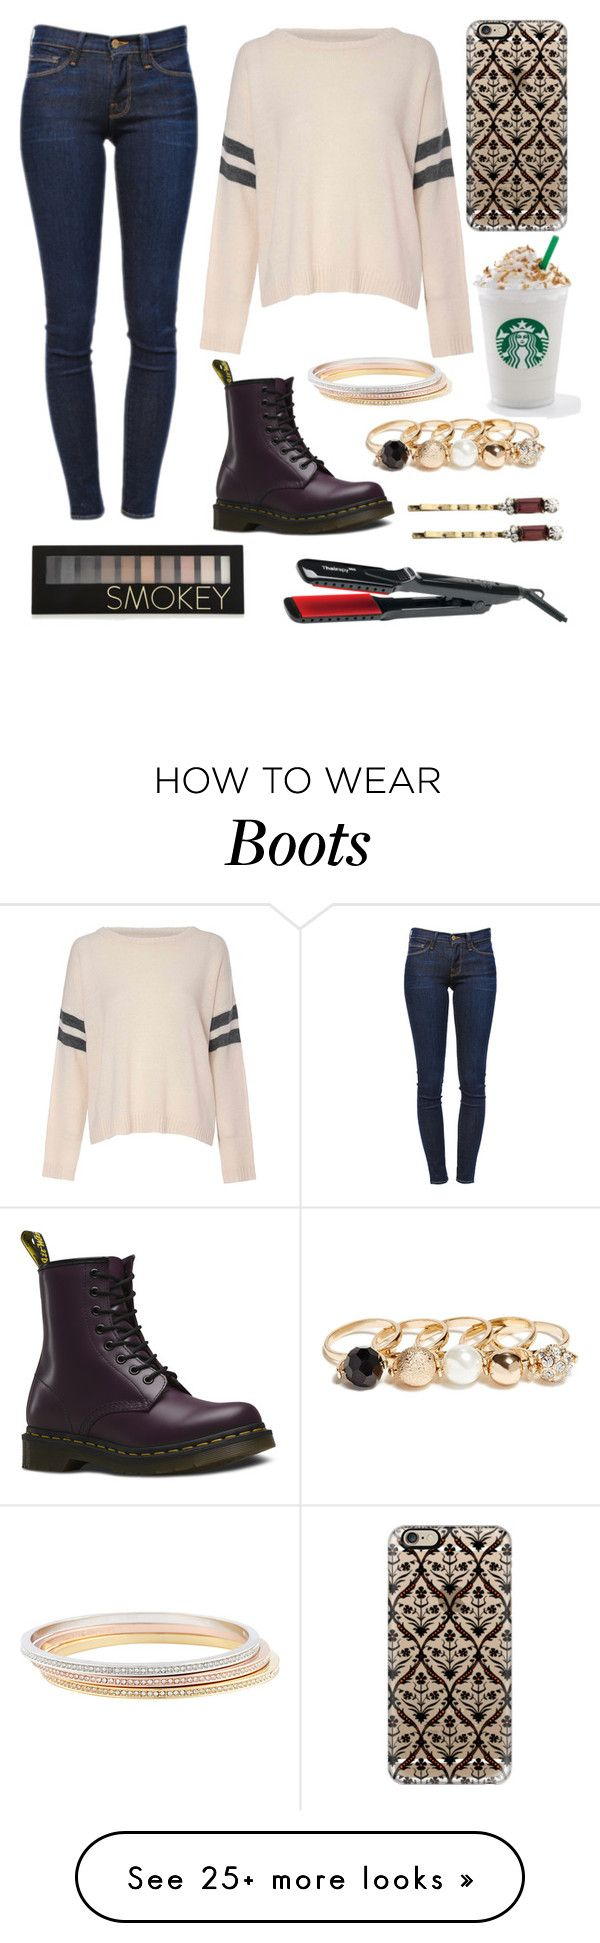 """Starbucks+lose shirts+cute boots= what's not to like?"" by fiona1919 on Polyvore featuring Casetify, Glamorous, Thairapy365, Frame Denim, Dr. Martens, GUESS, Kate Spade and Forever 21"